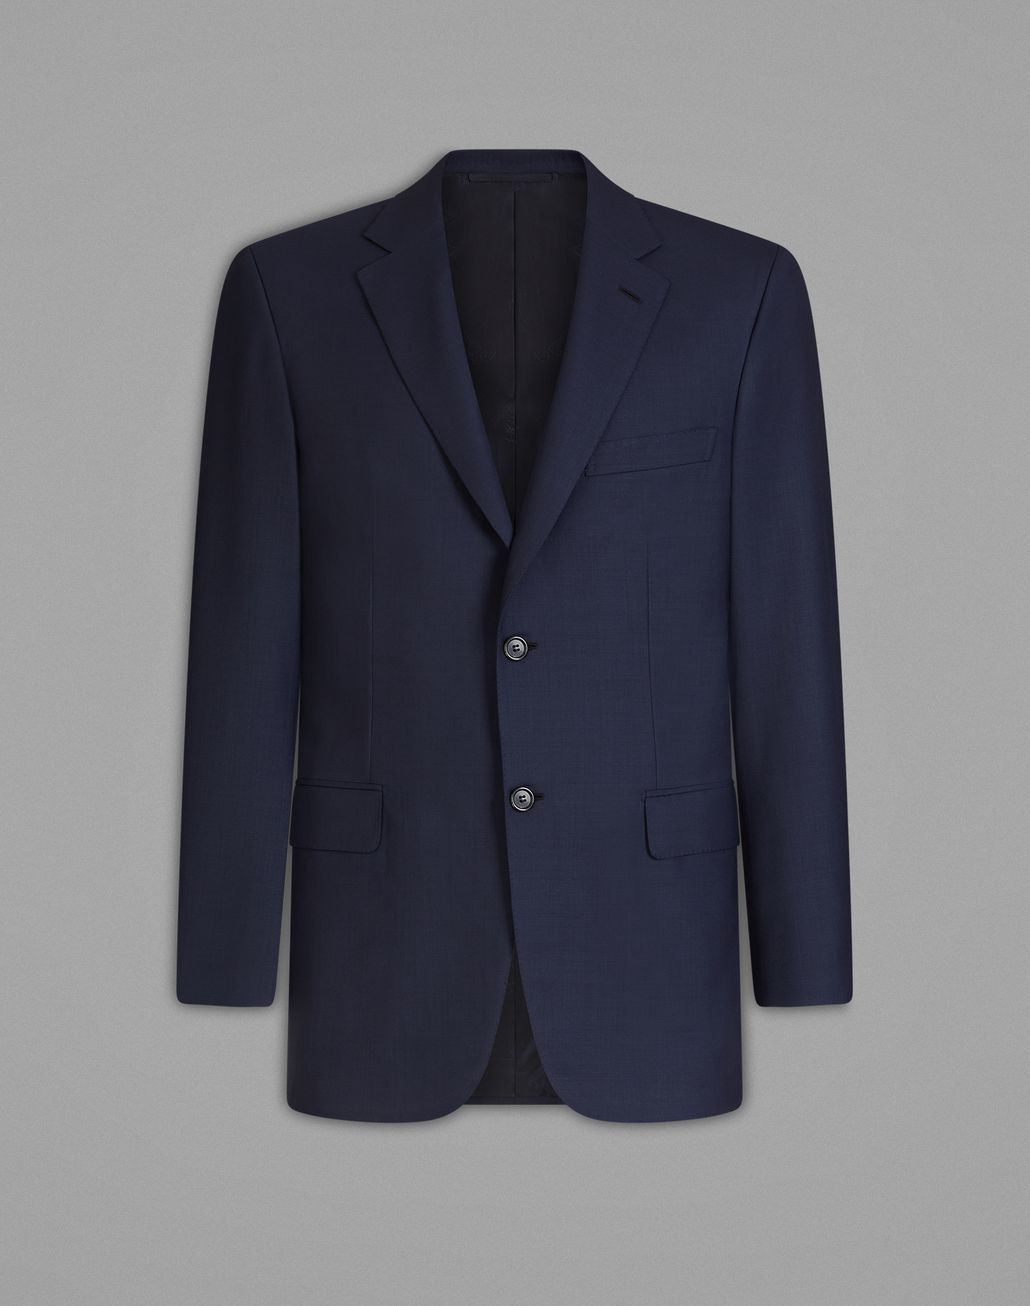 BRIONI 'Essential' Navy Blue Ravello Jacket Jackets [*** pickupInStoreShippingNotGuaranteed_info ***] f